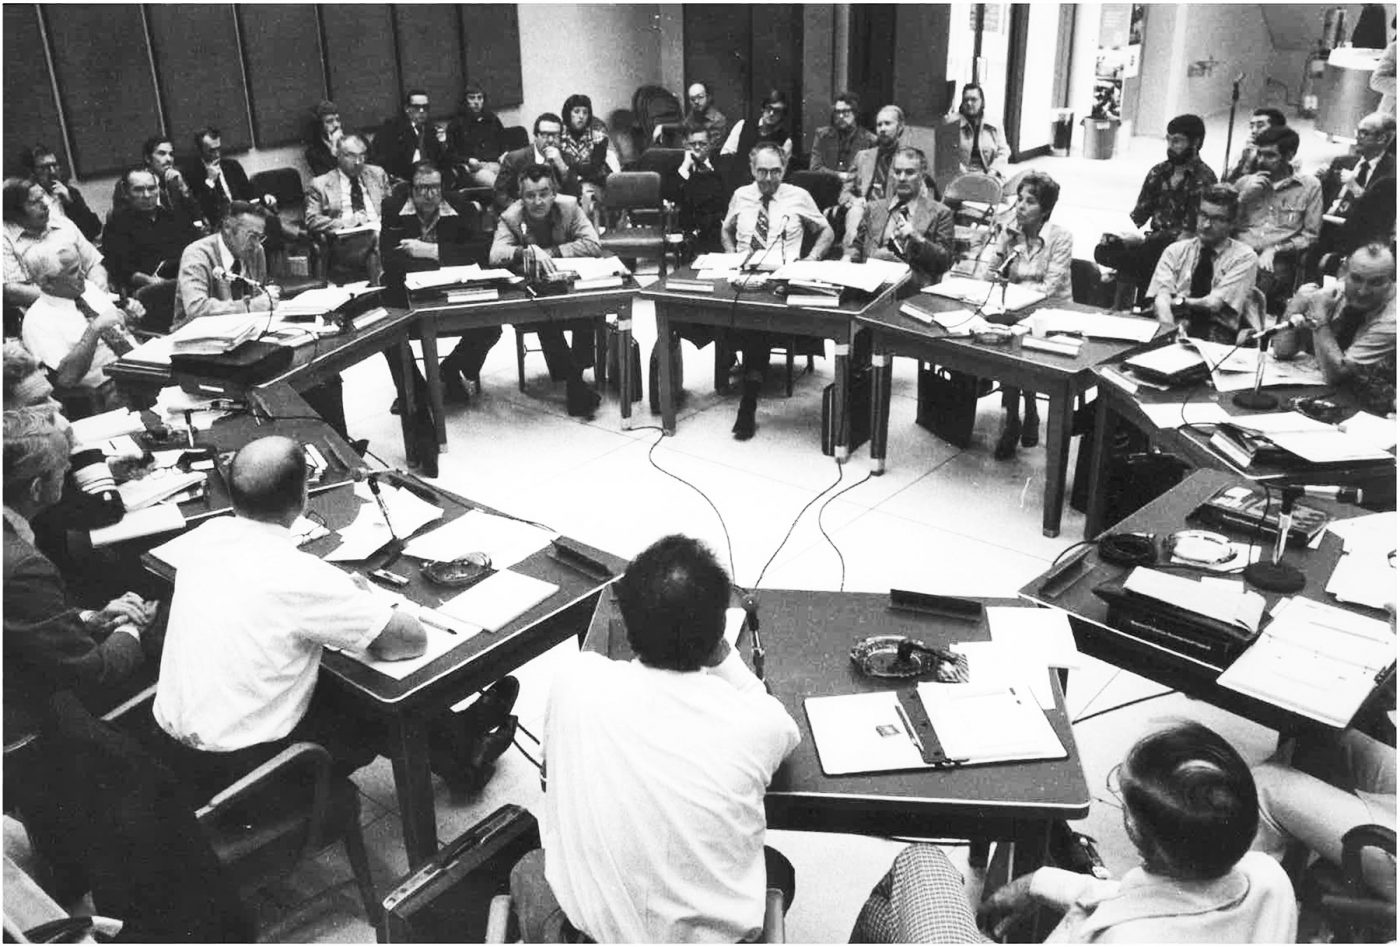 About 20 men and one woman sit around a table in the 1970s